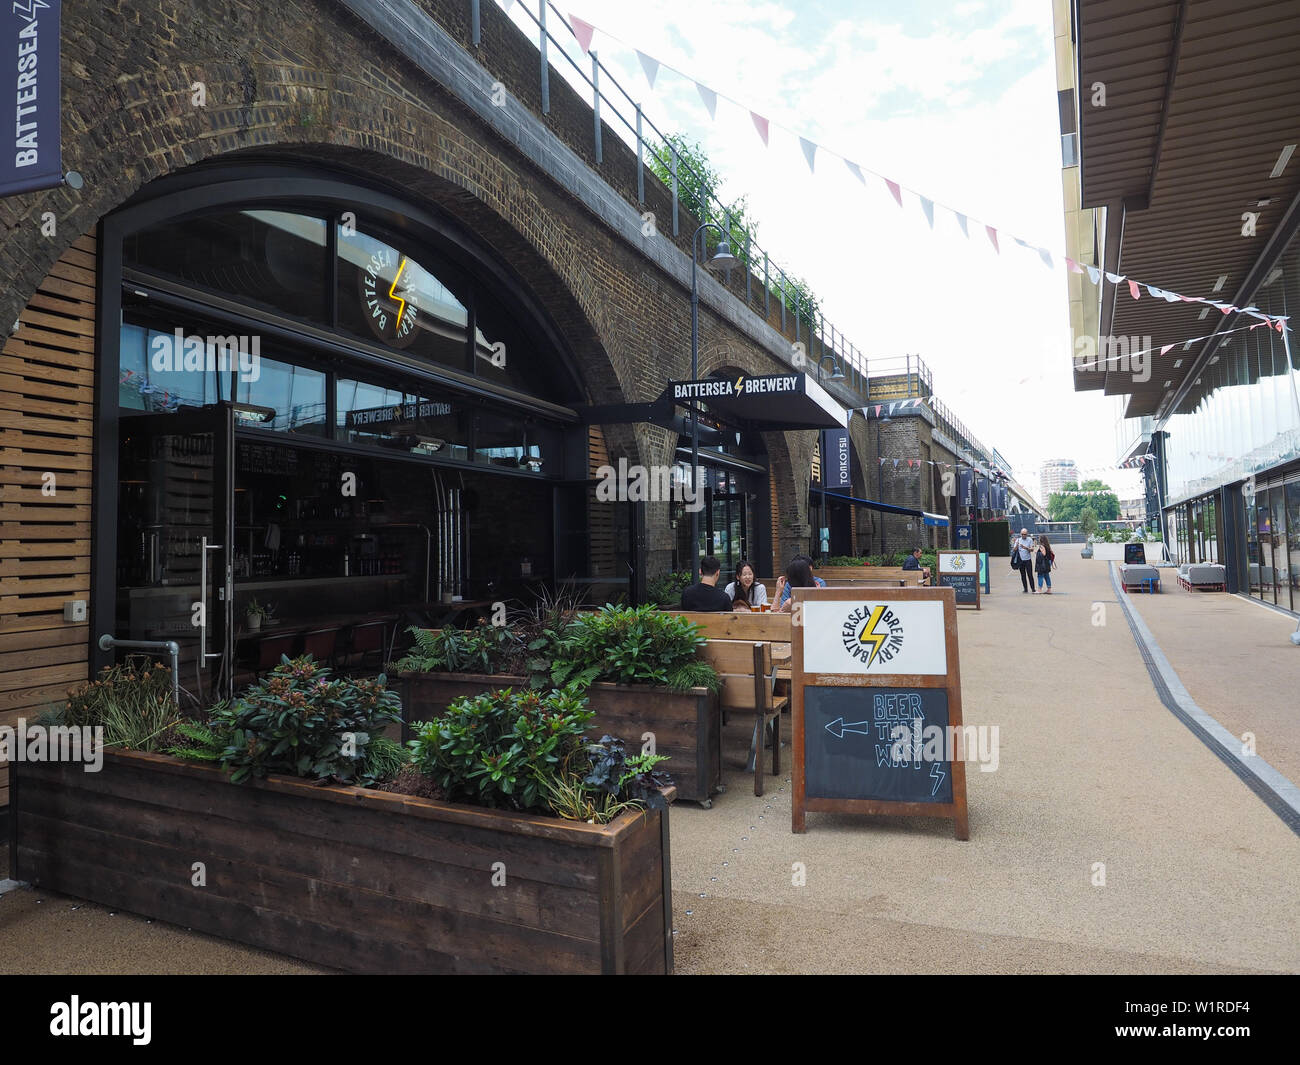 LONDON, UK - CIRCA JUNE 2019: Circus West village at Battersea Power Station - Stock Image